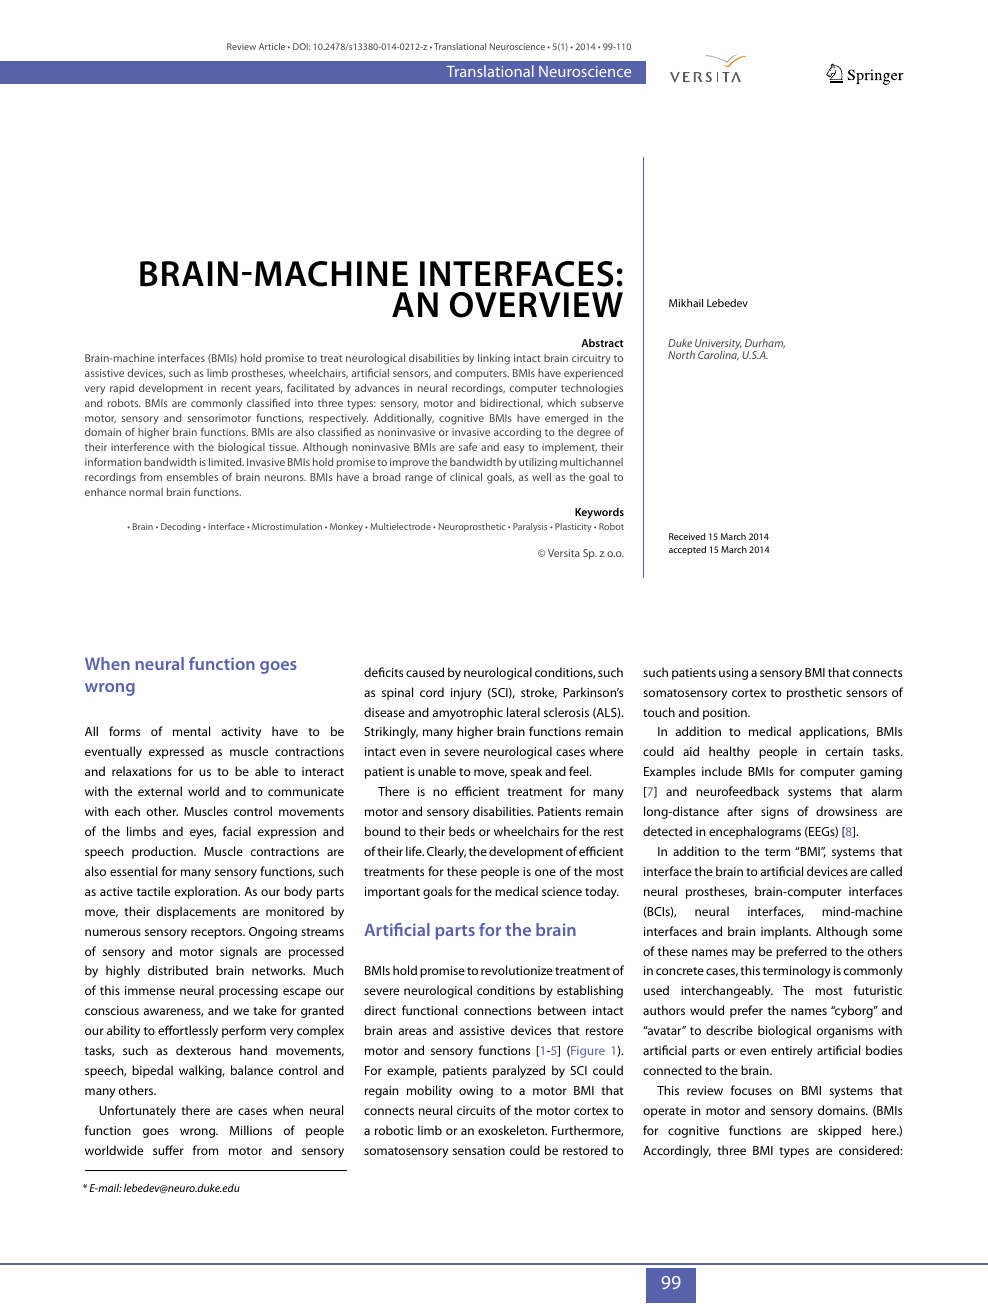 Brain-machine interfaces: an overview – topic of research